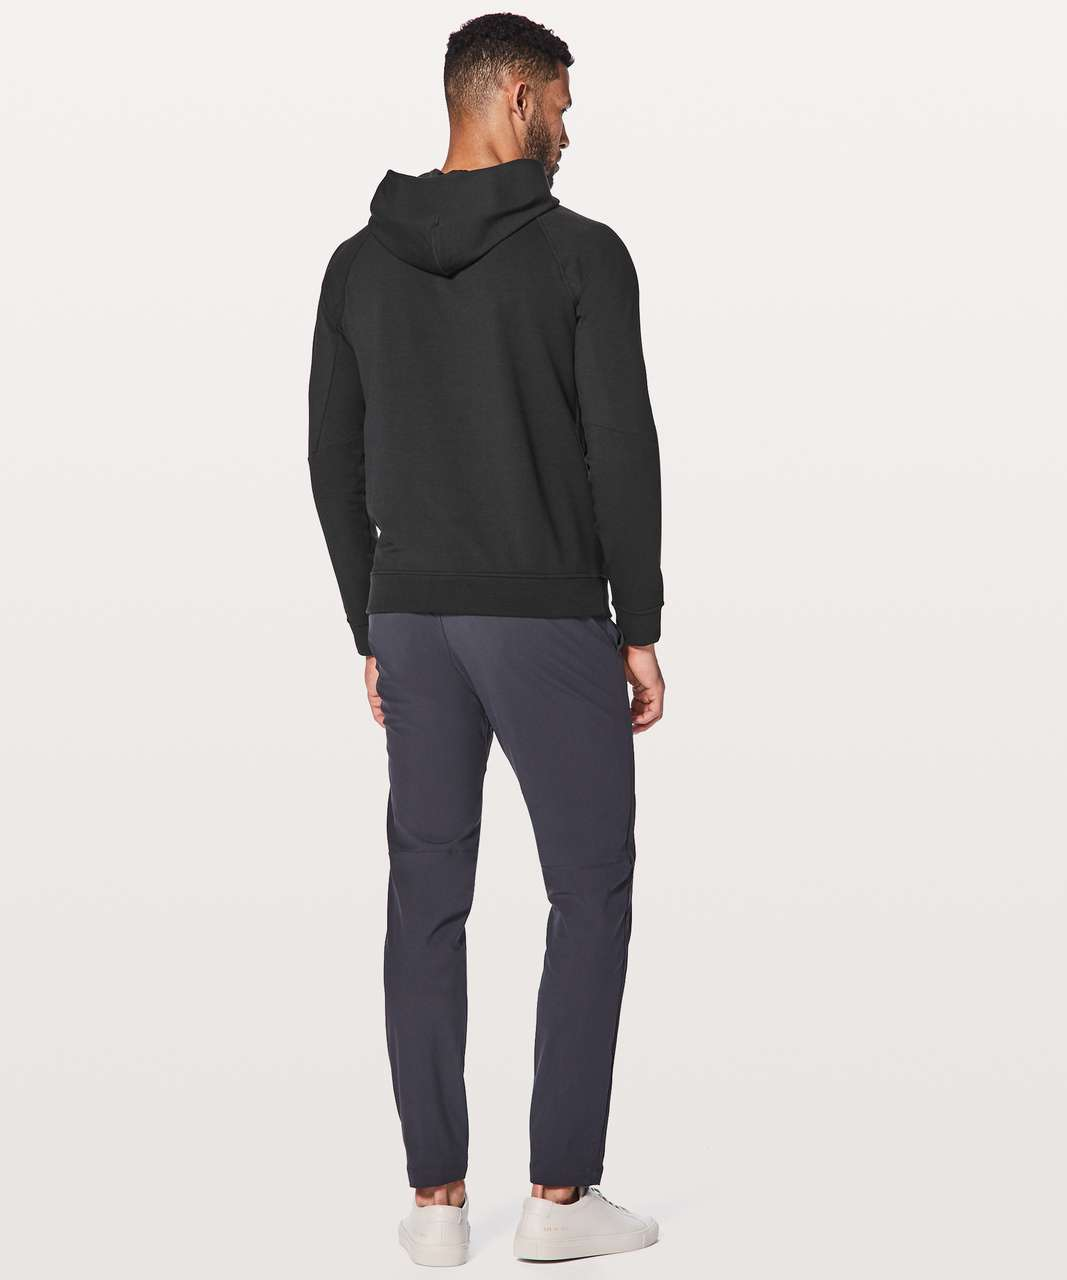 Lululemon City Sweat Pullover Hoodie - Black